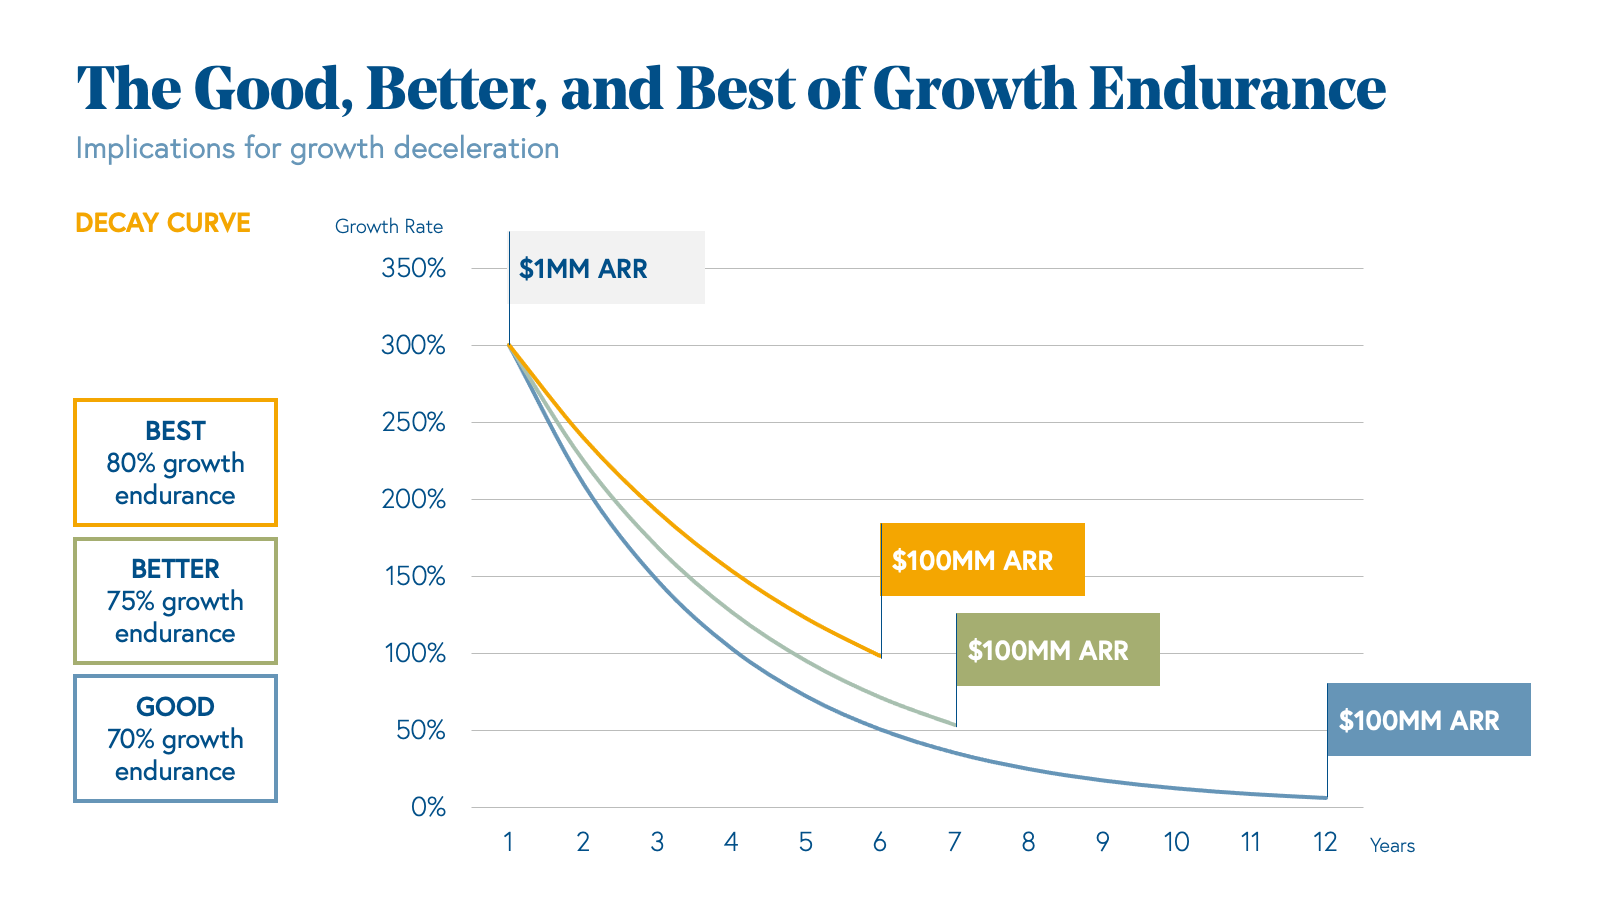 The Good, Better, and Best of Growth Endurance Chart